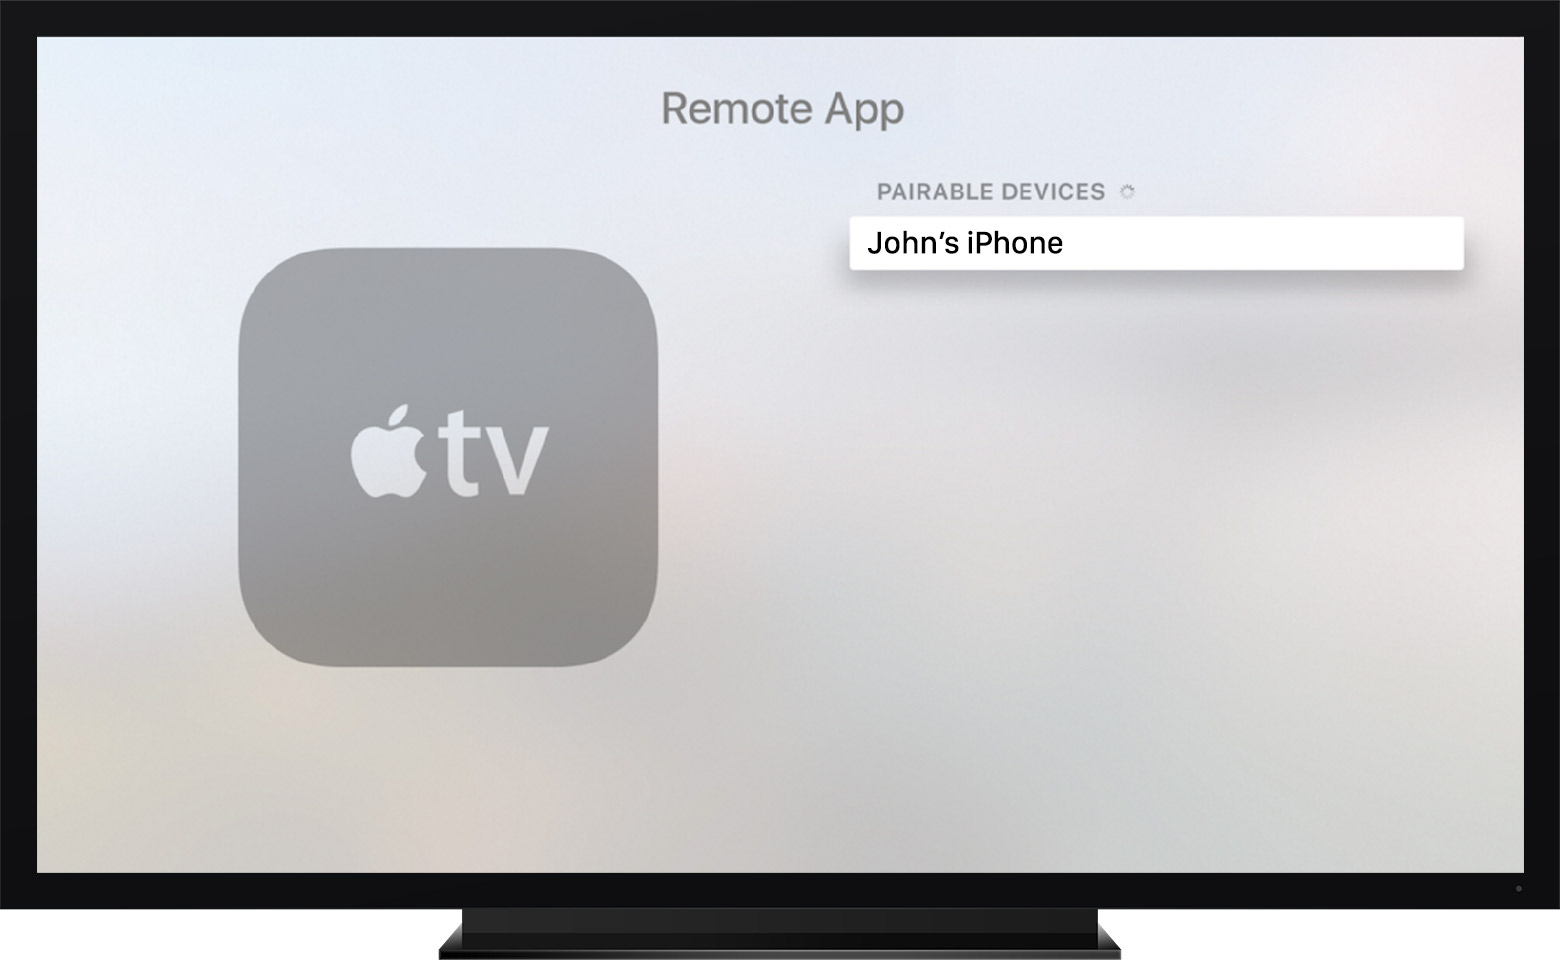 The Remote app in the Settings menu on Apple TV (4th generation)